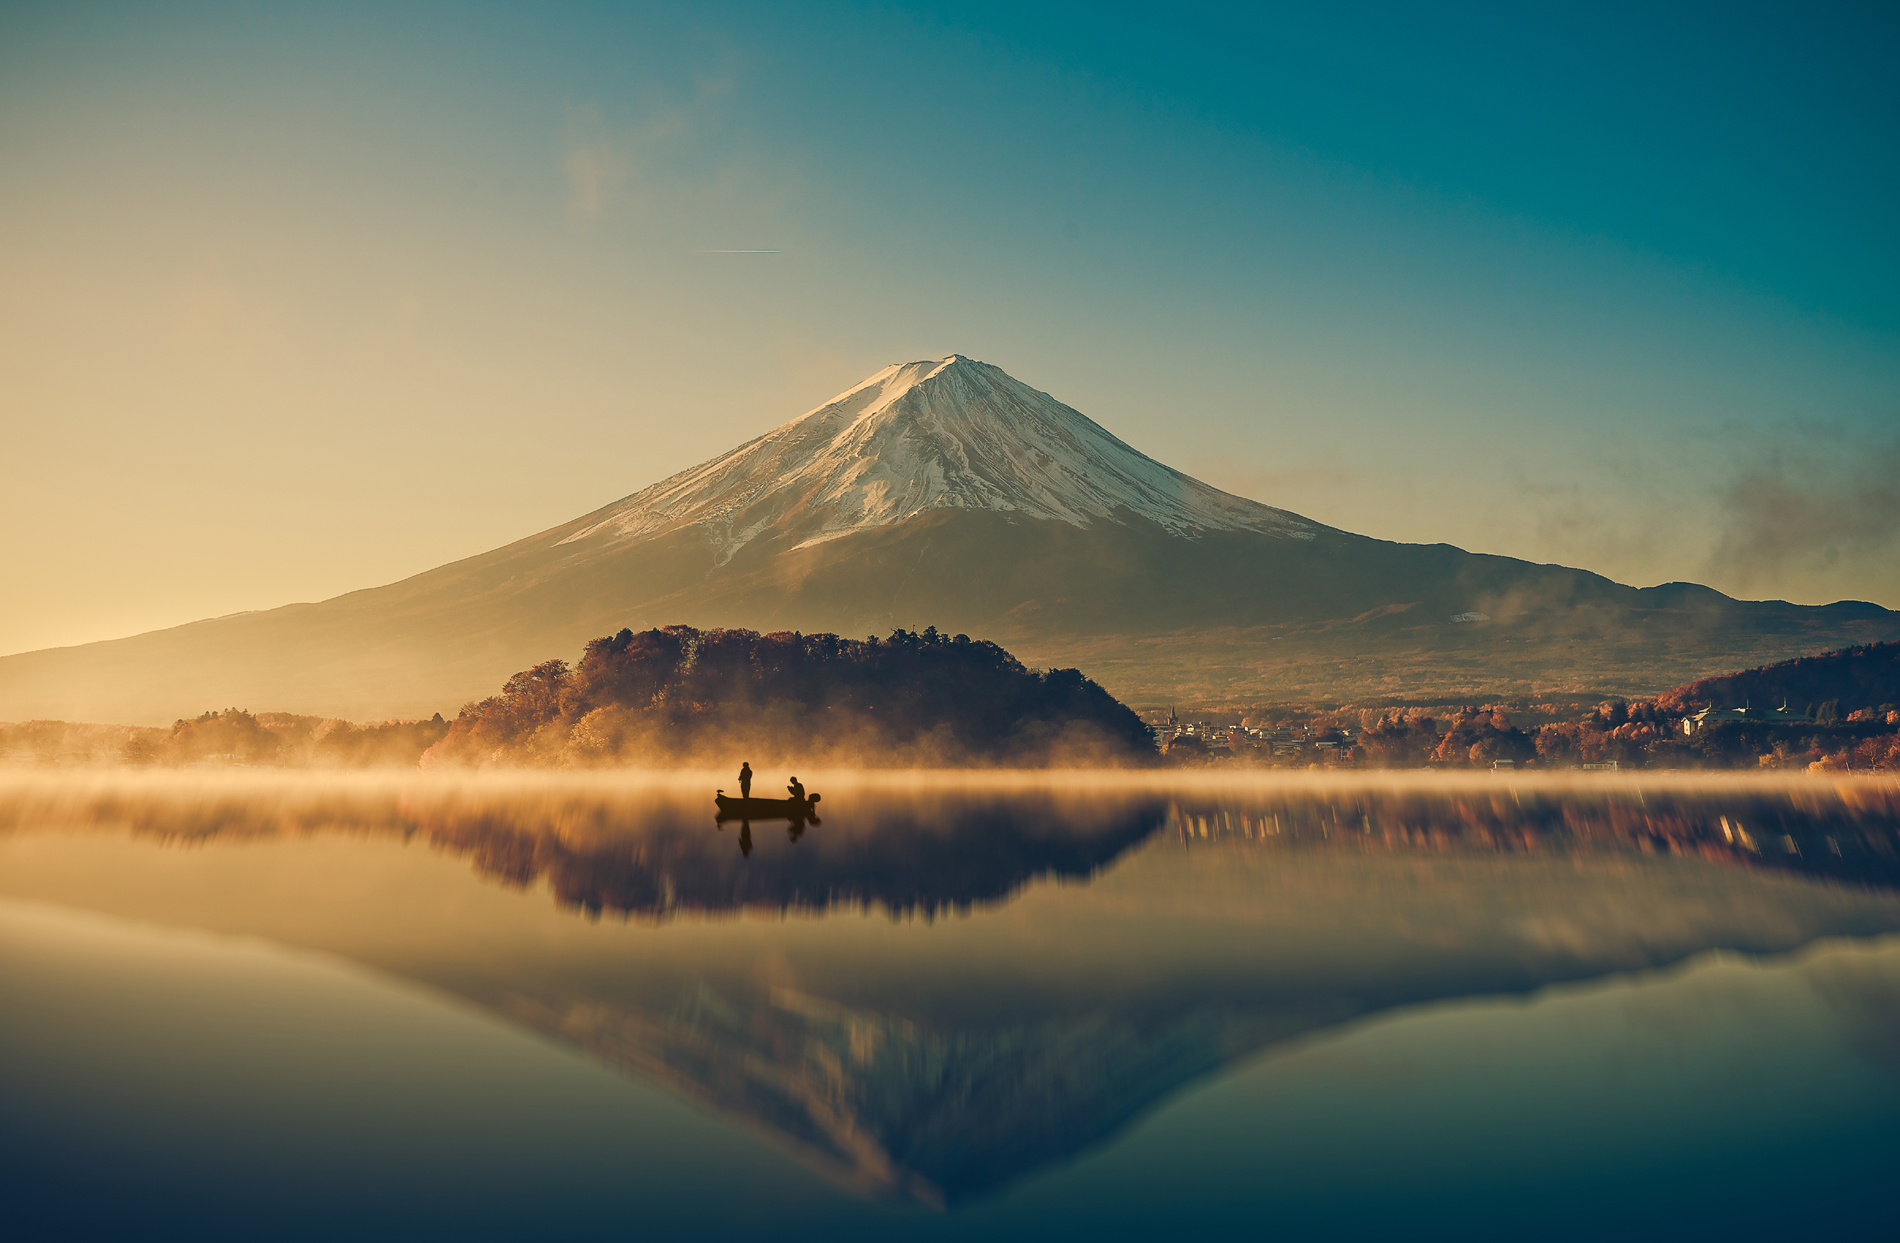 Mount Fuji and calm Lake 52559